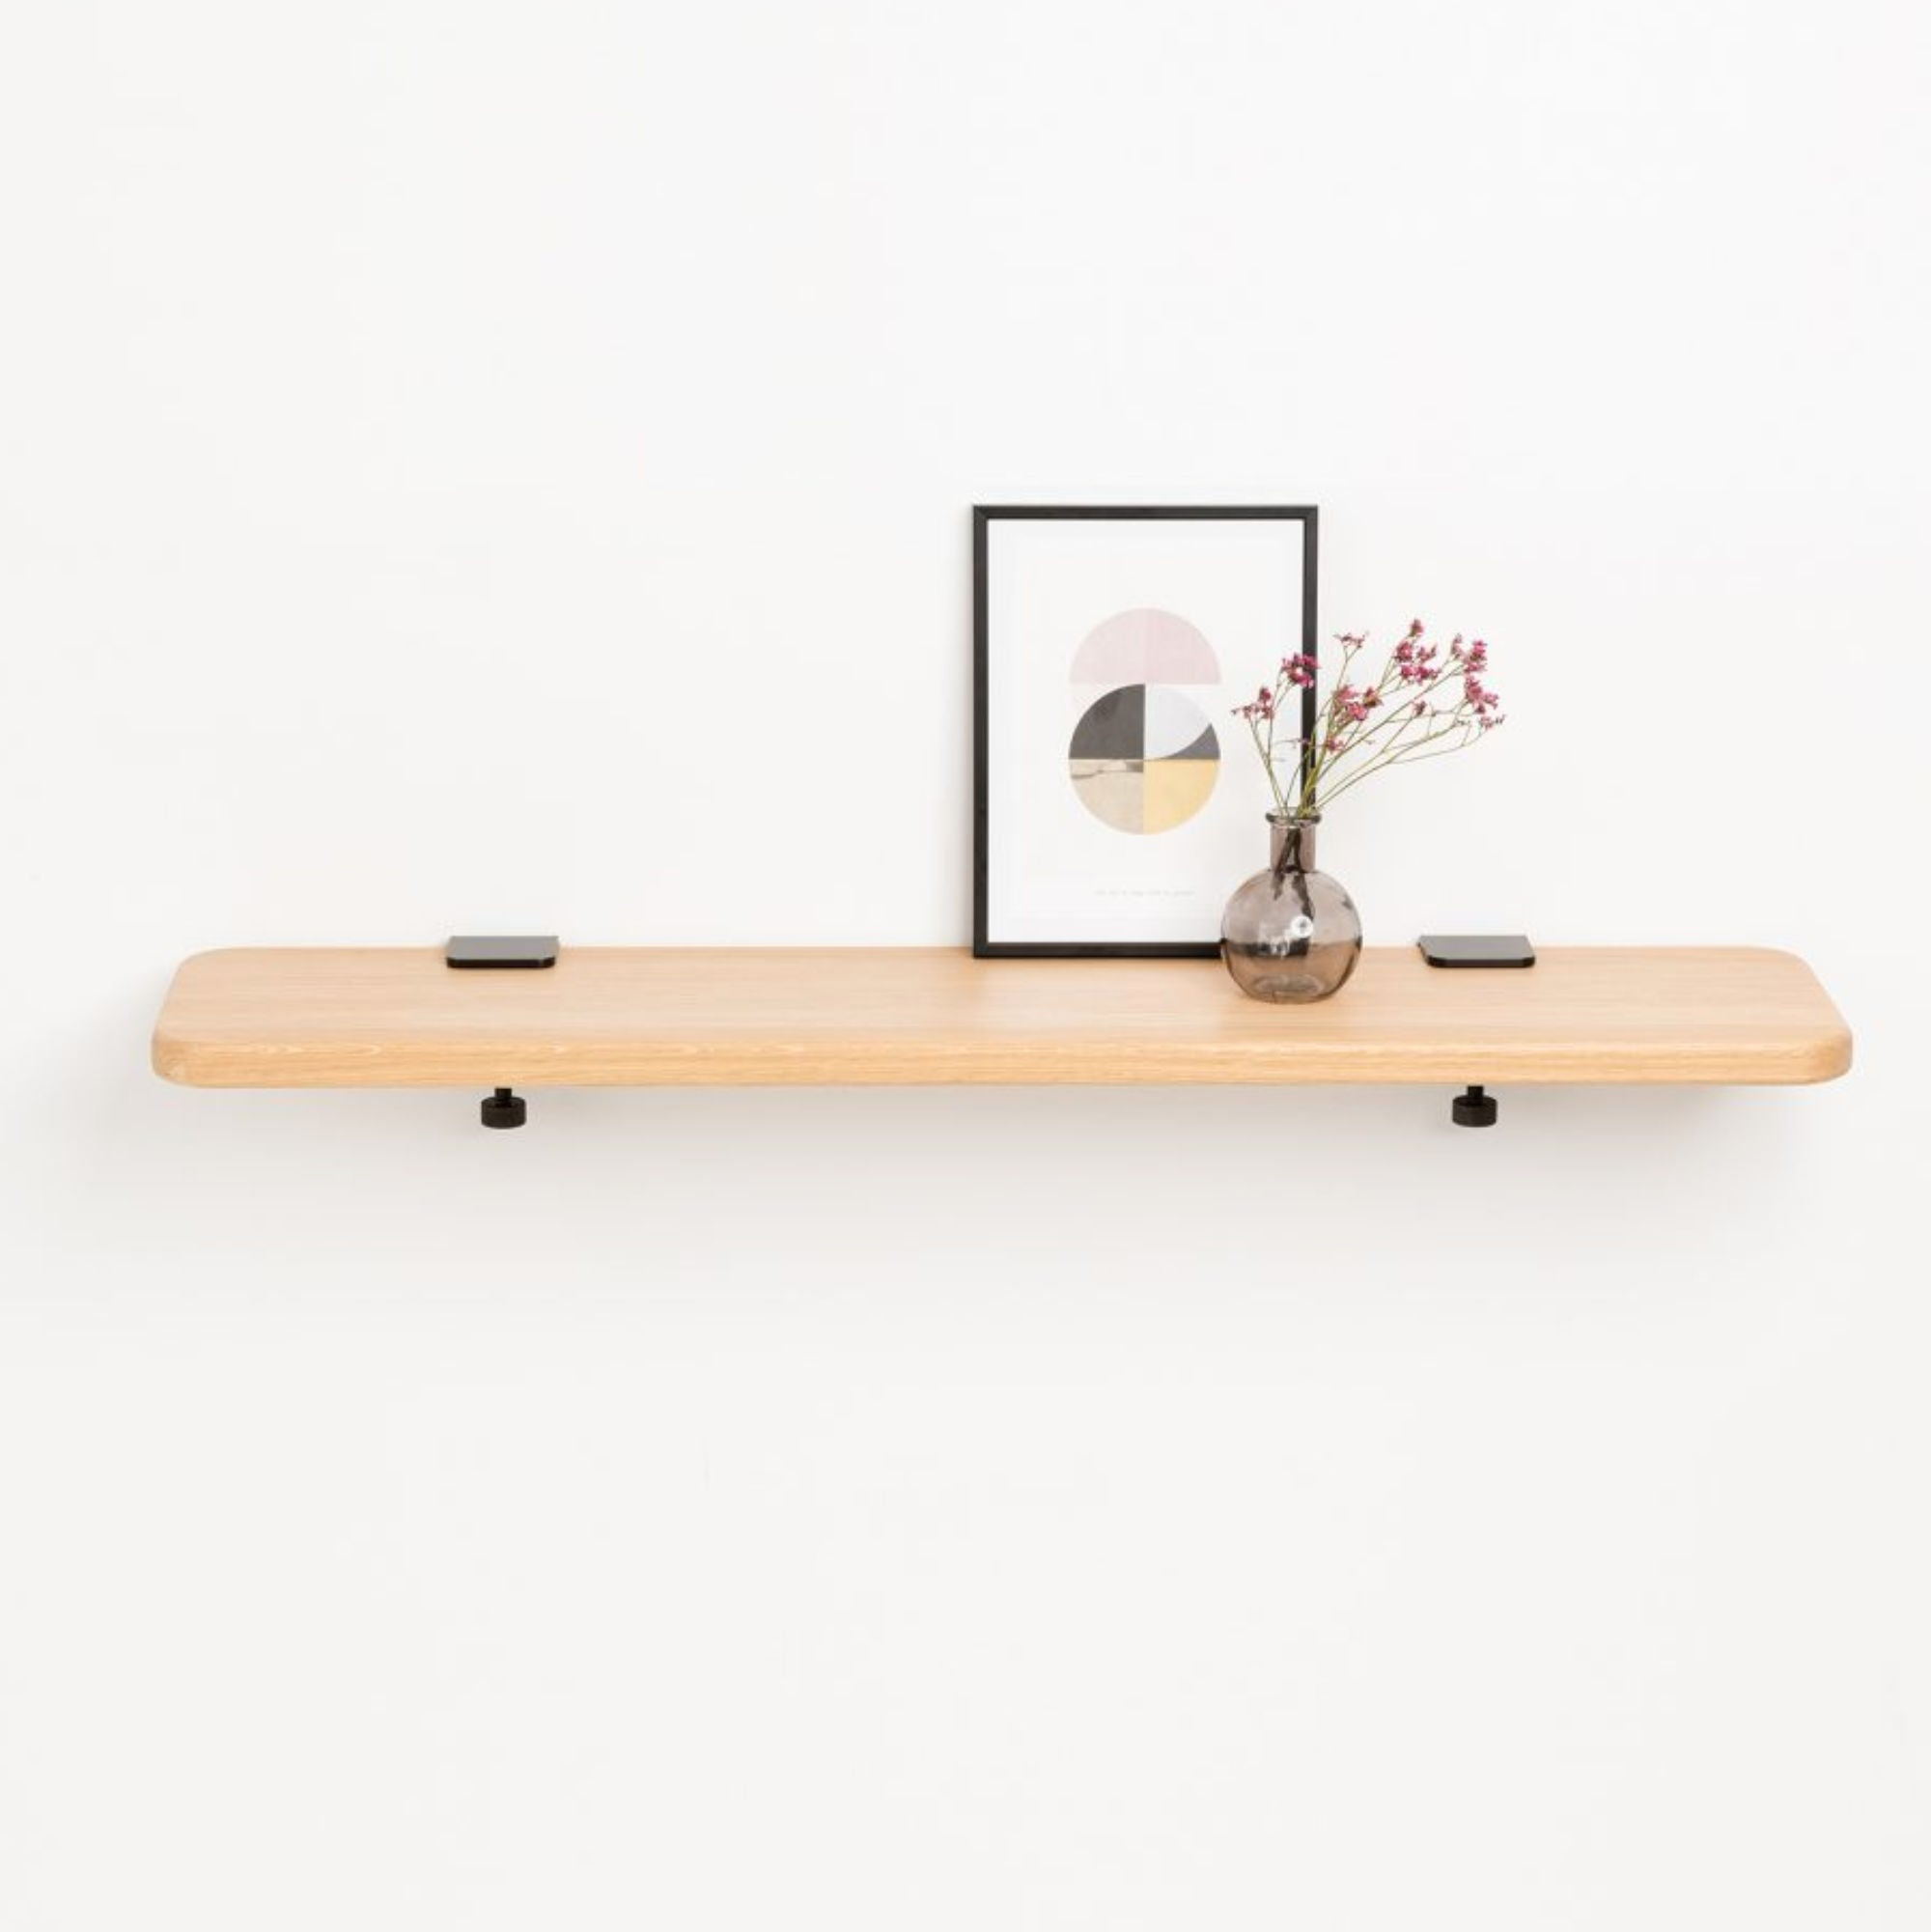 Tiptop Solid oak shelf, 90 * 20cm